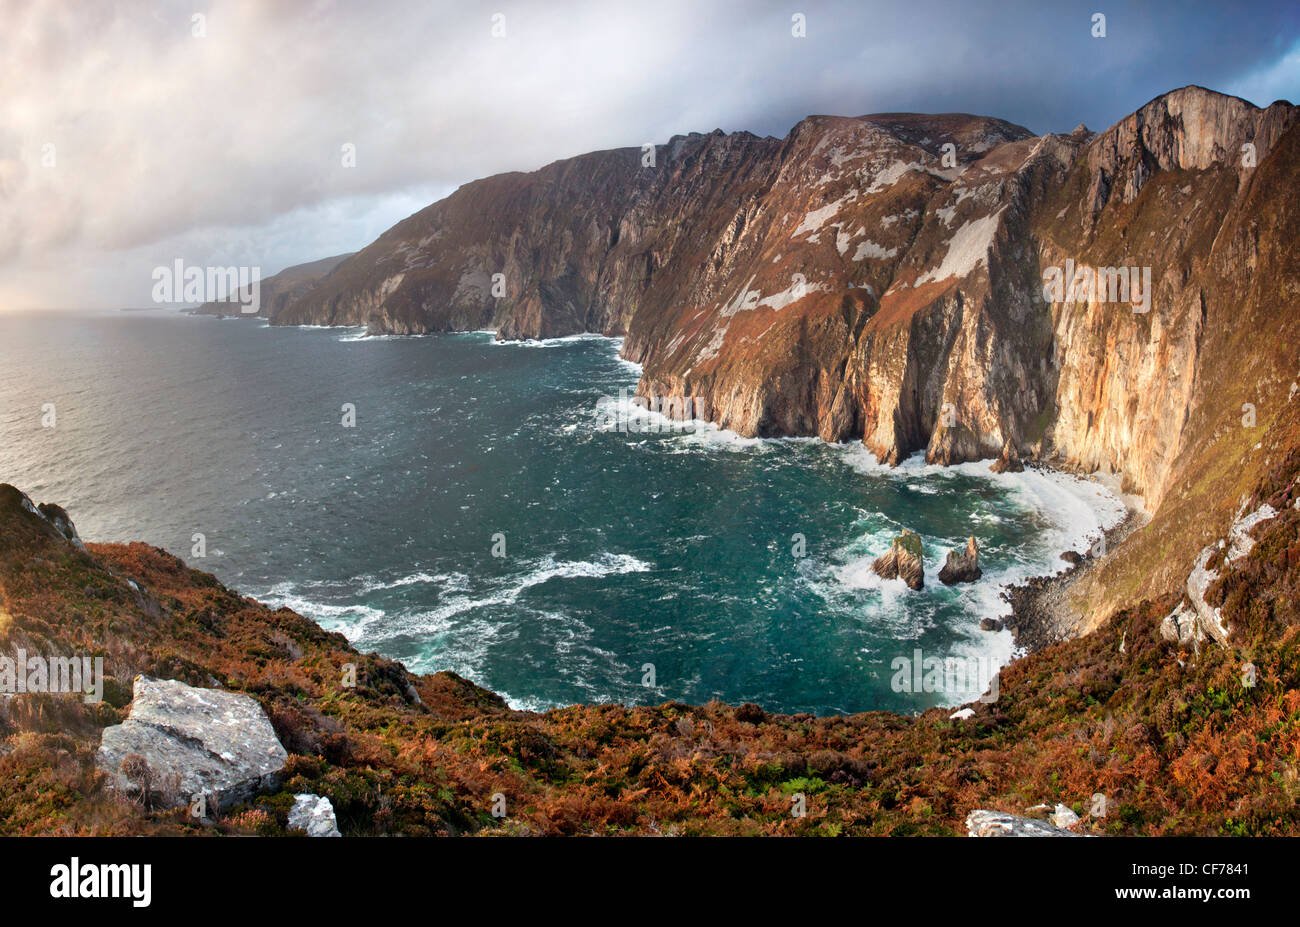 Slieve League cliffs, situated on the West coast of Donegal - Stock Image